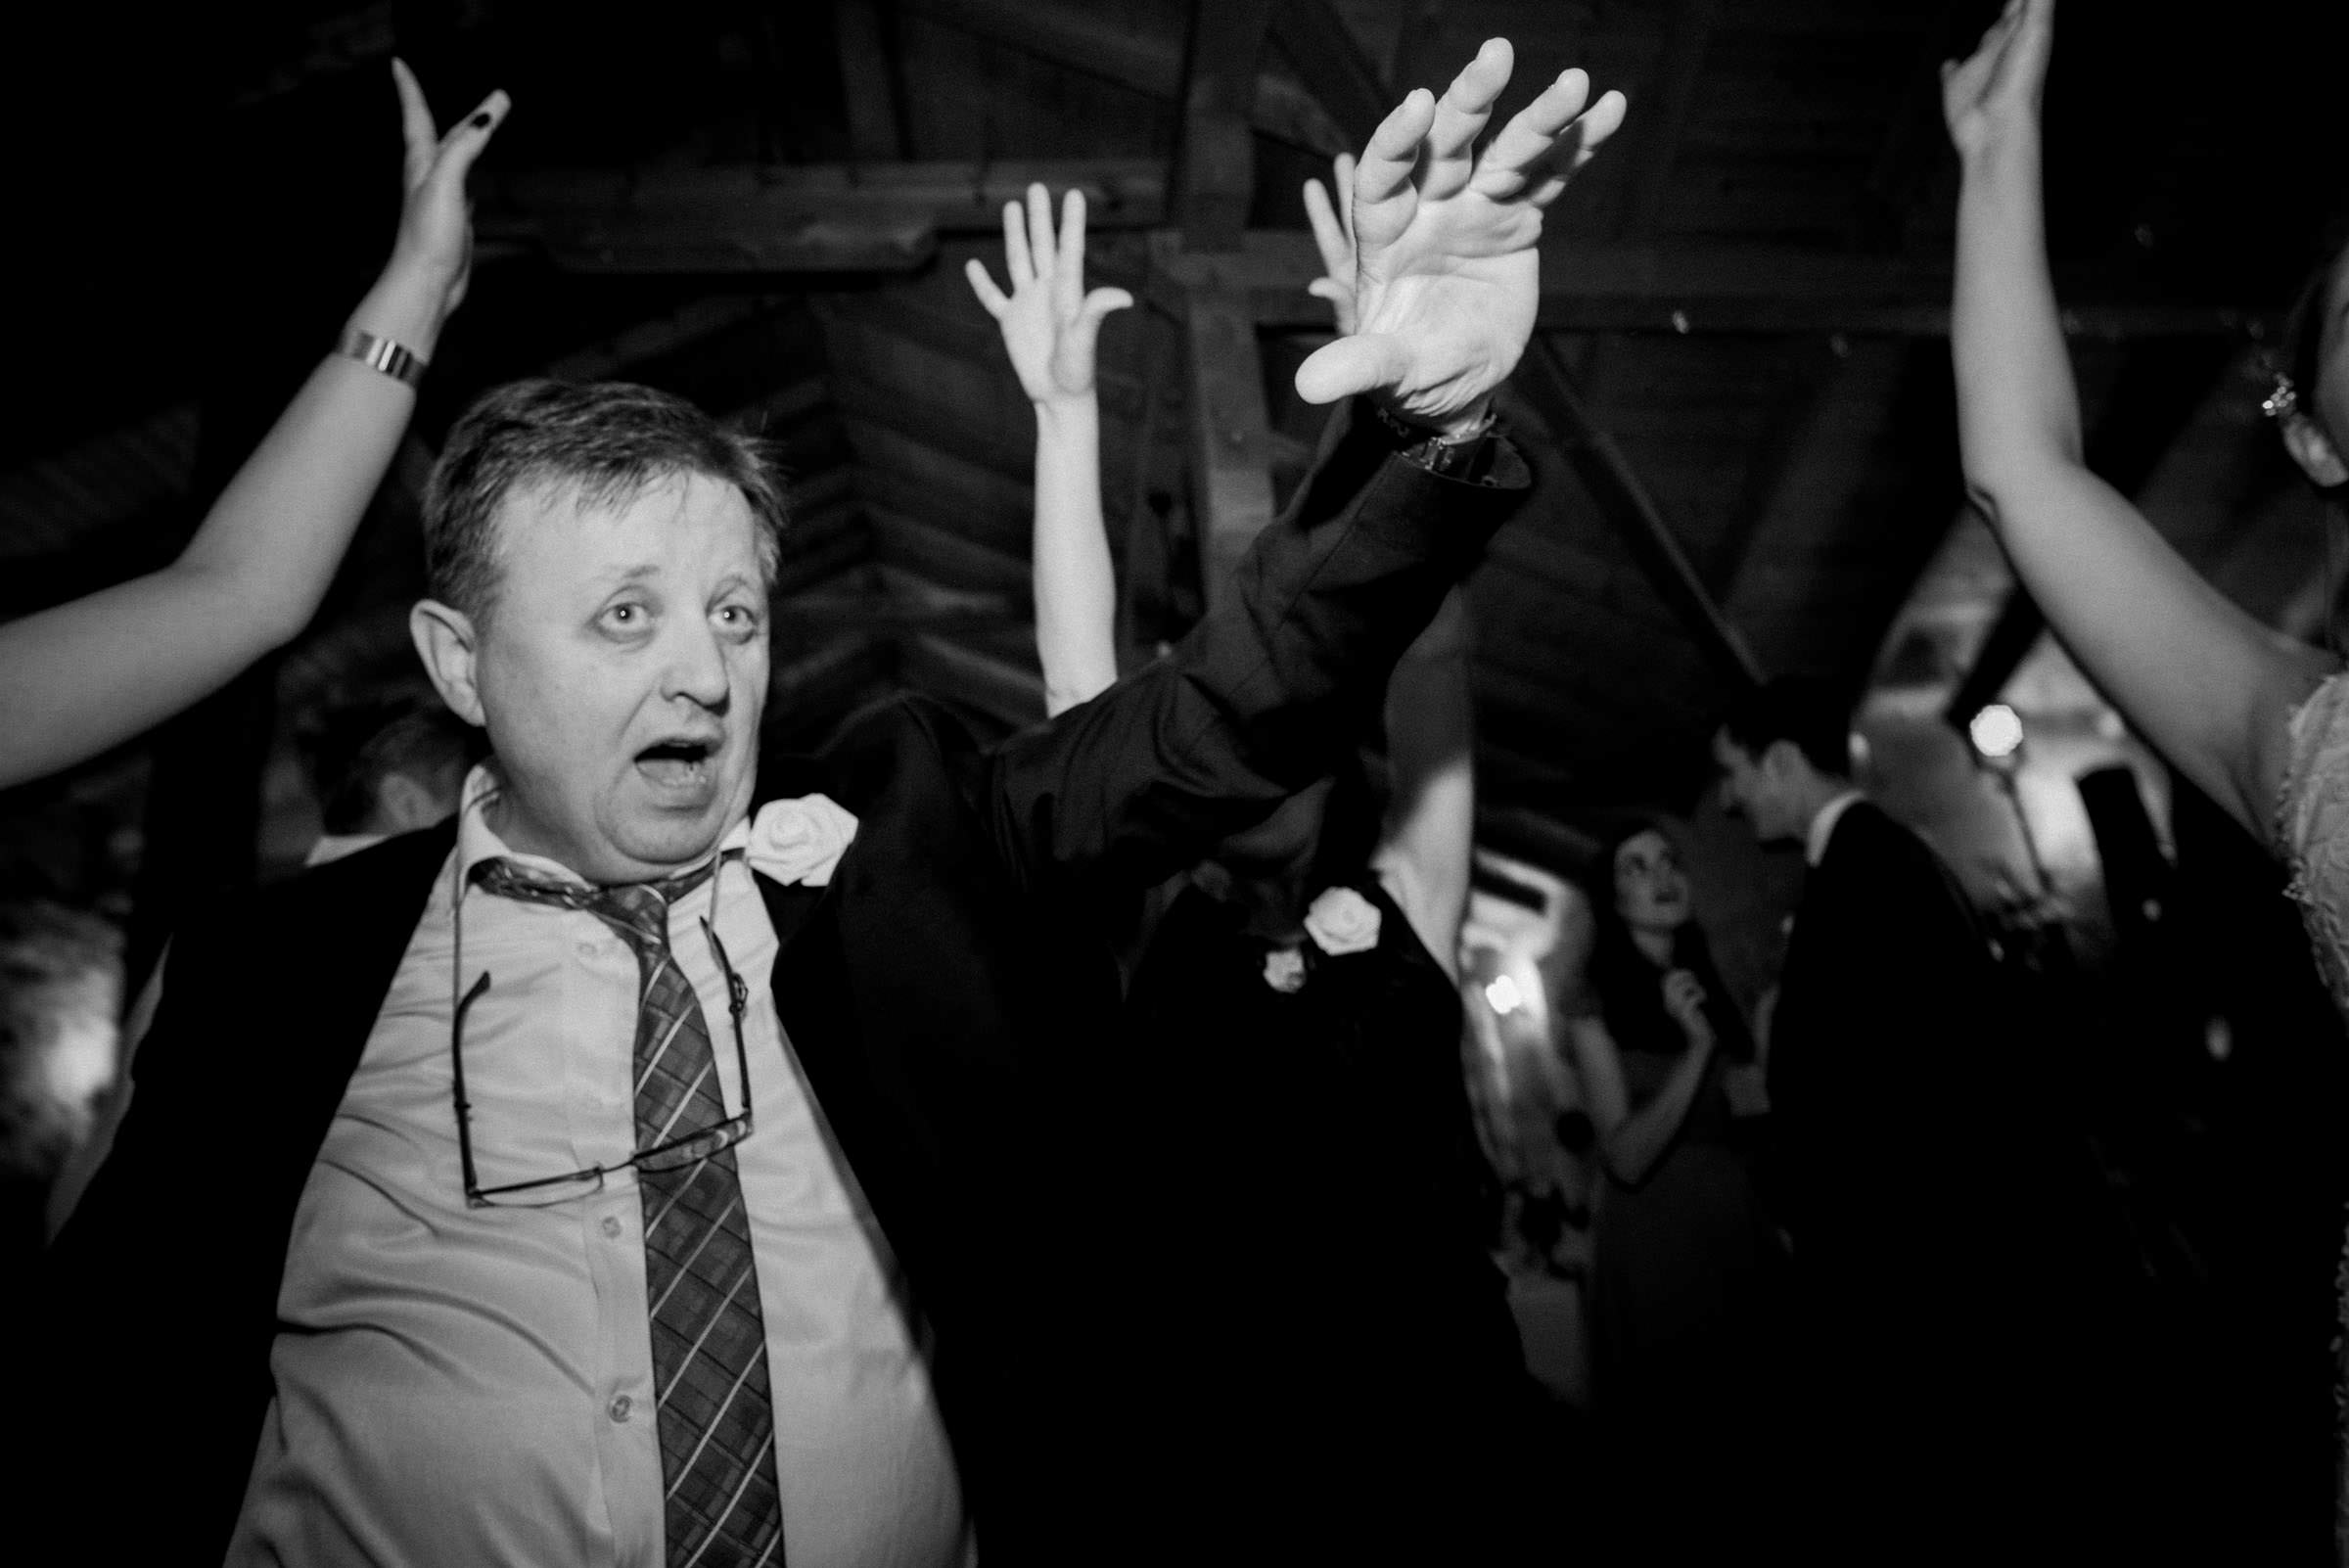 grooms father dancing to the music